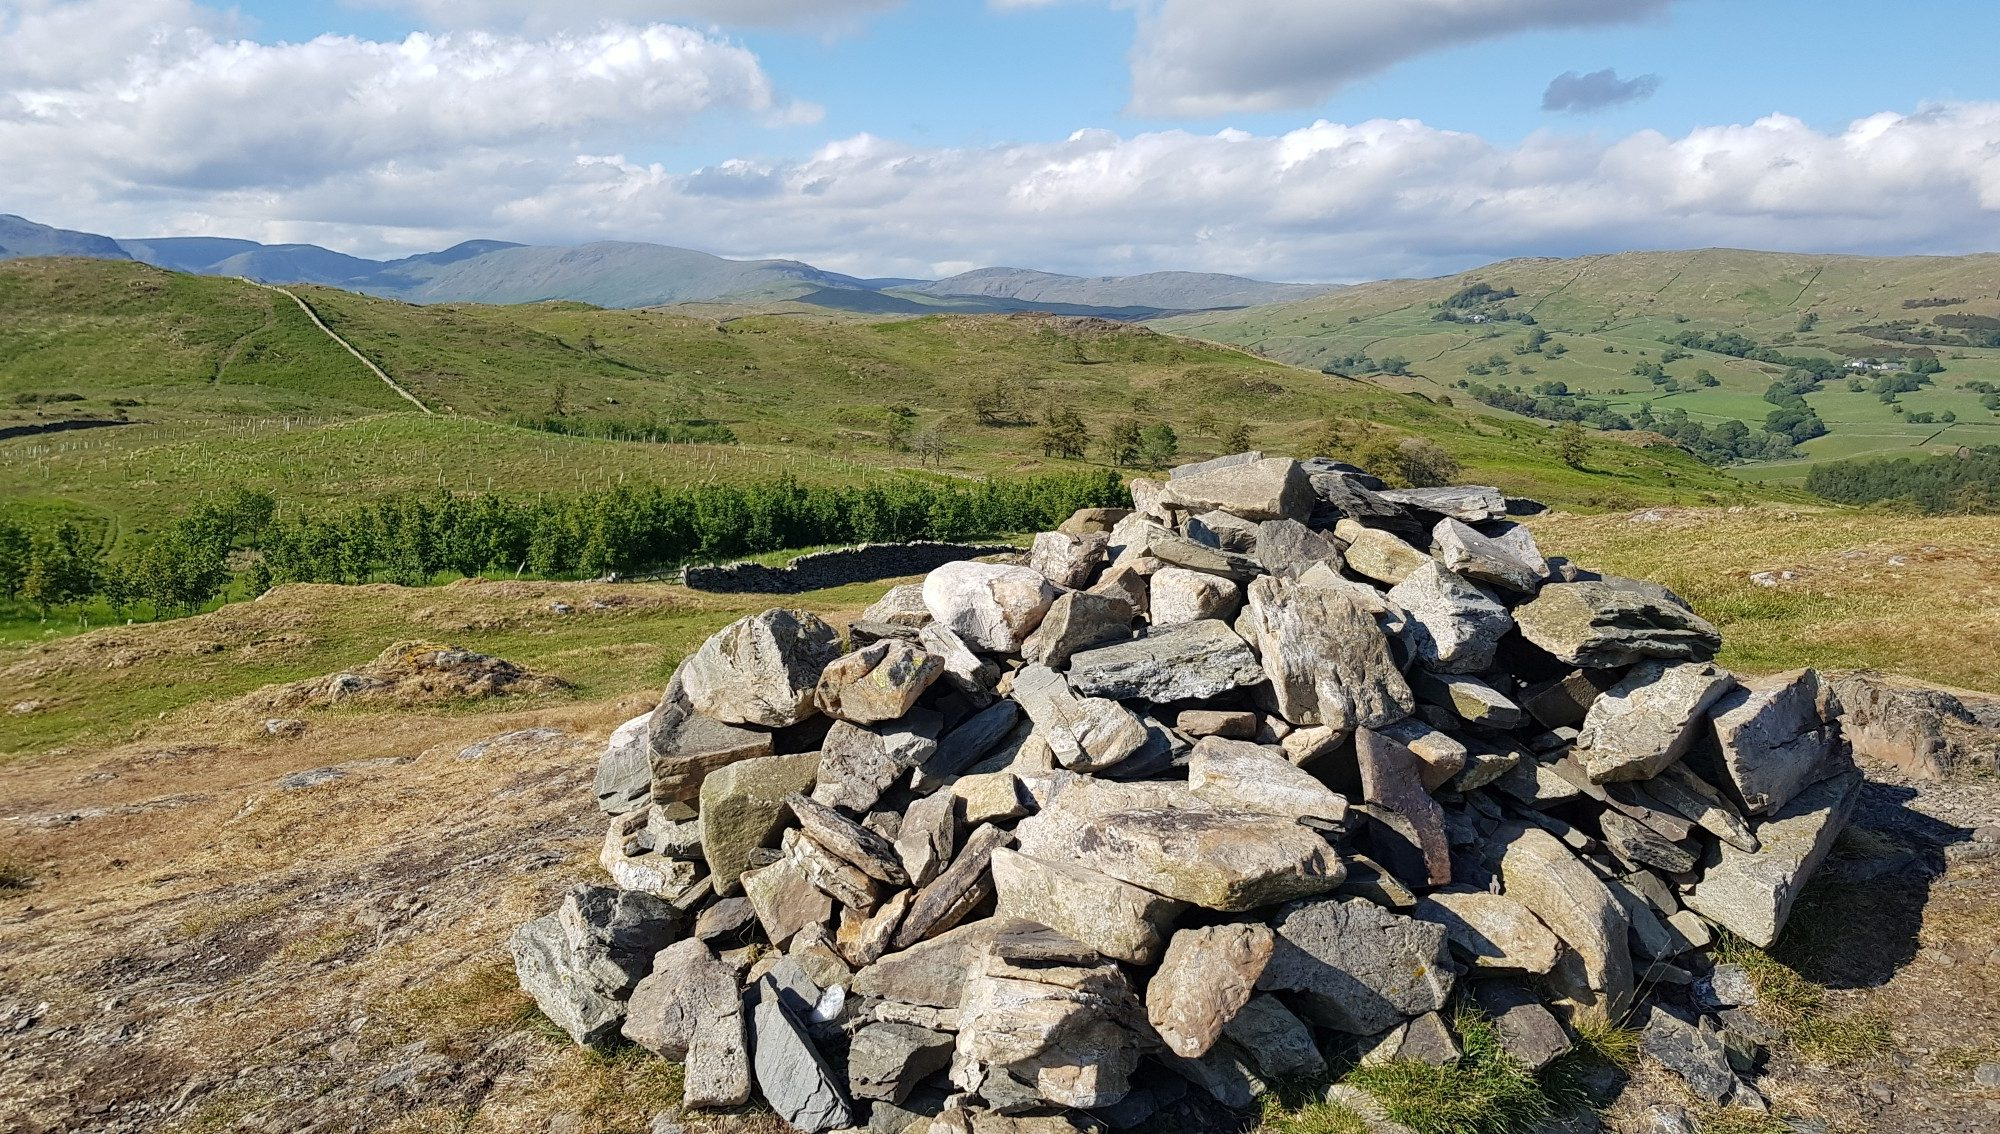 The summit cairn of Reston Scar